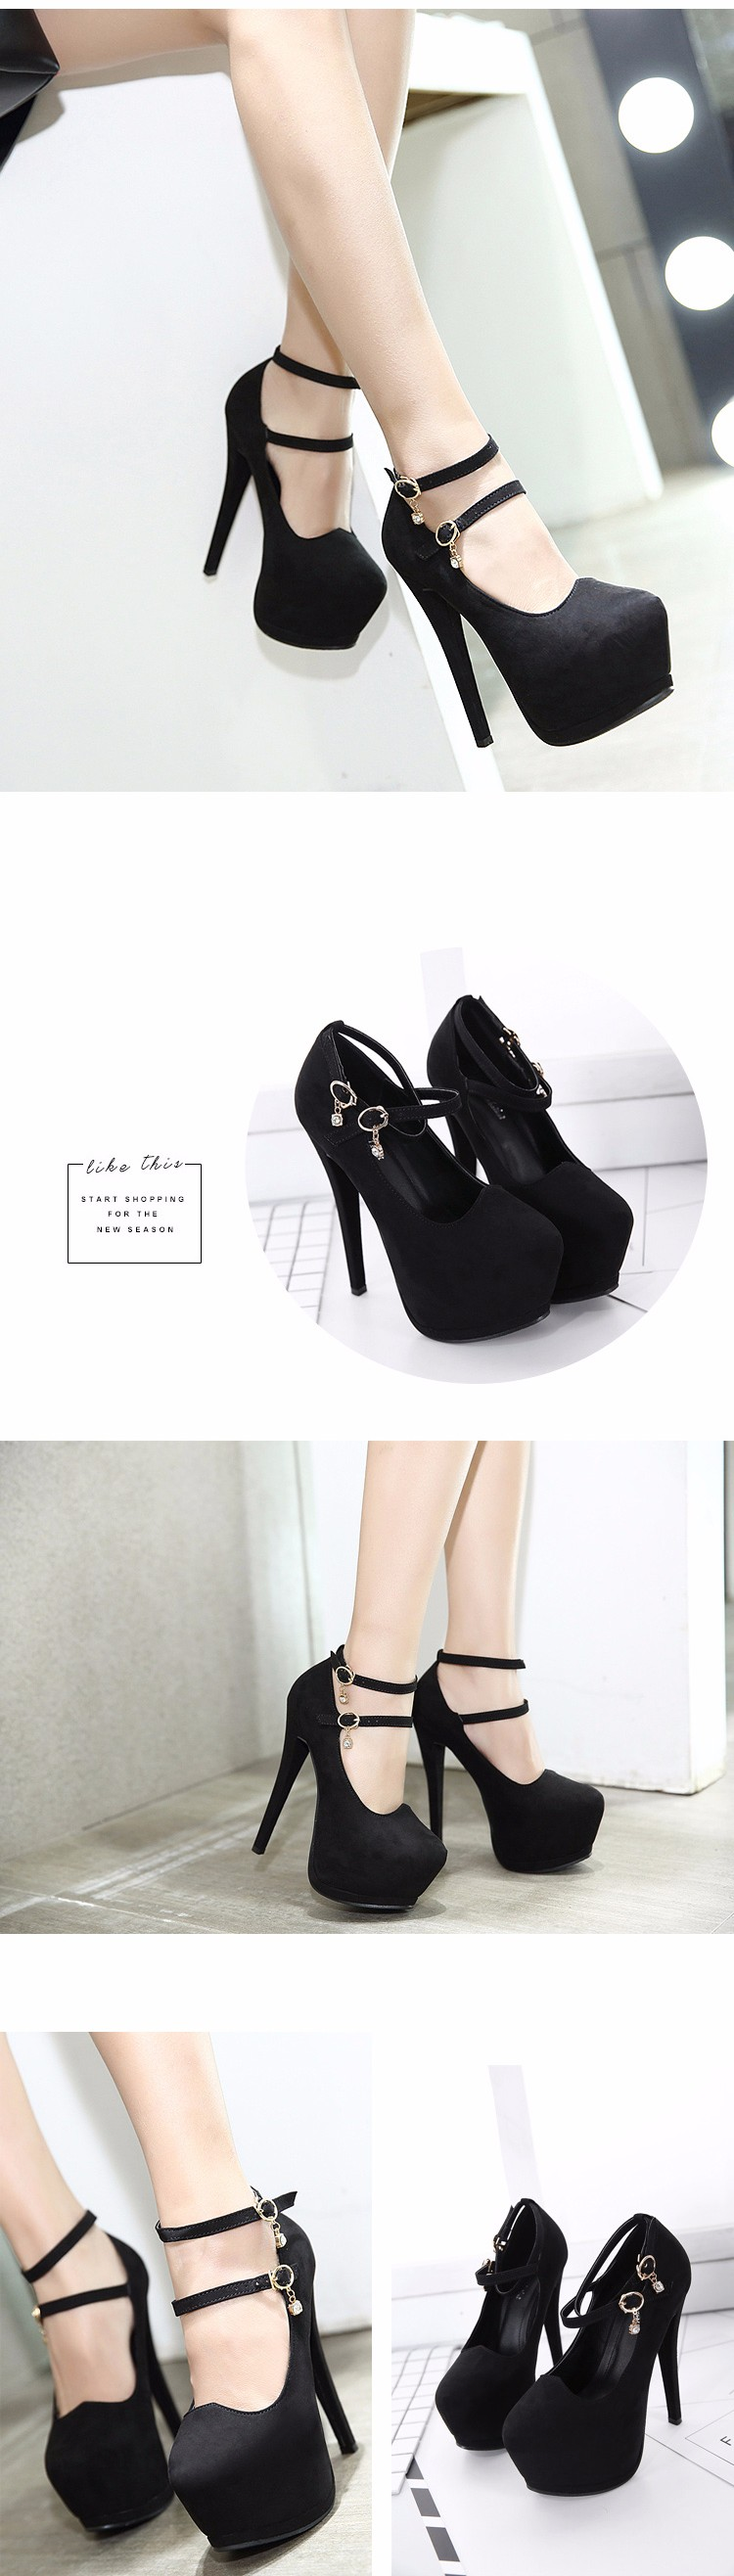 f258c196989 womens pump shoes stiletto strappy heels party shoes sexy pumps ...